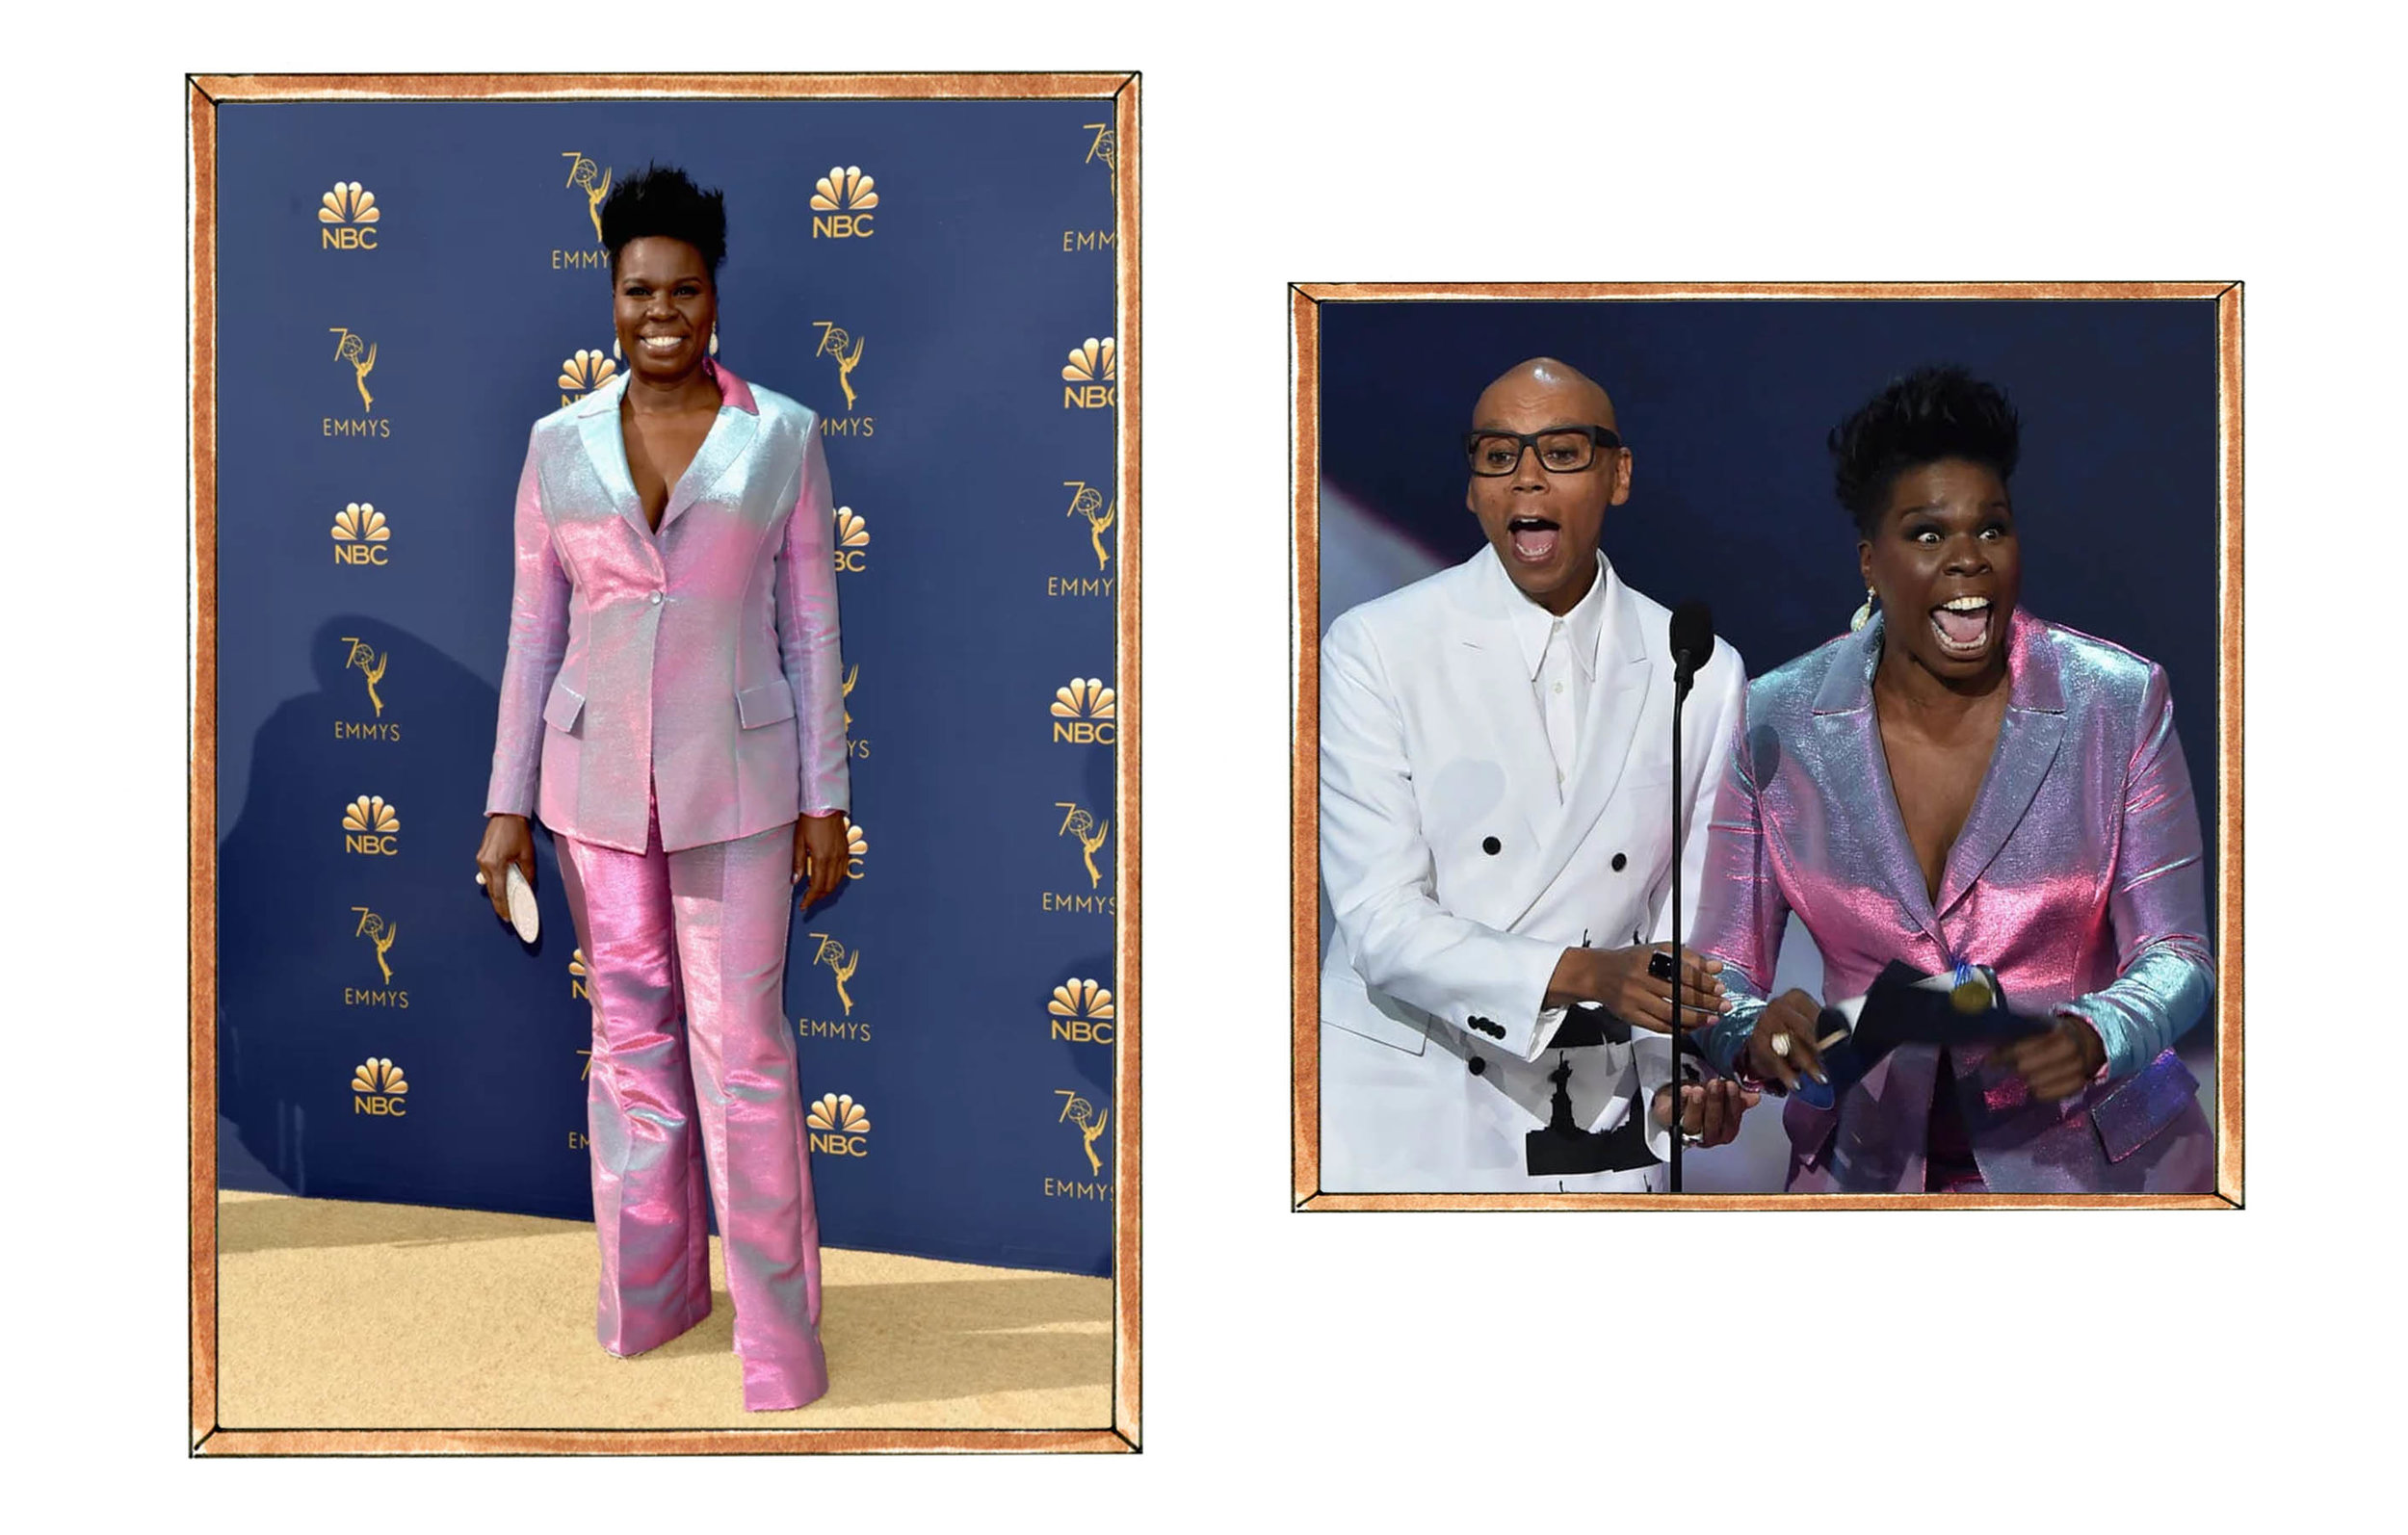 Leslie Jones in Christian Siriano, Ru Paul with Leslie Jones presenting an Emmy